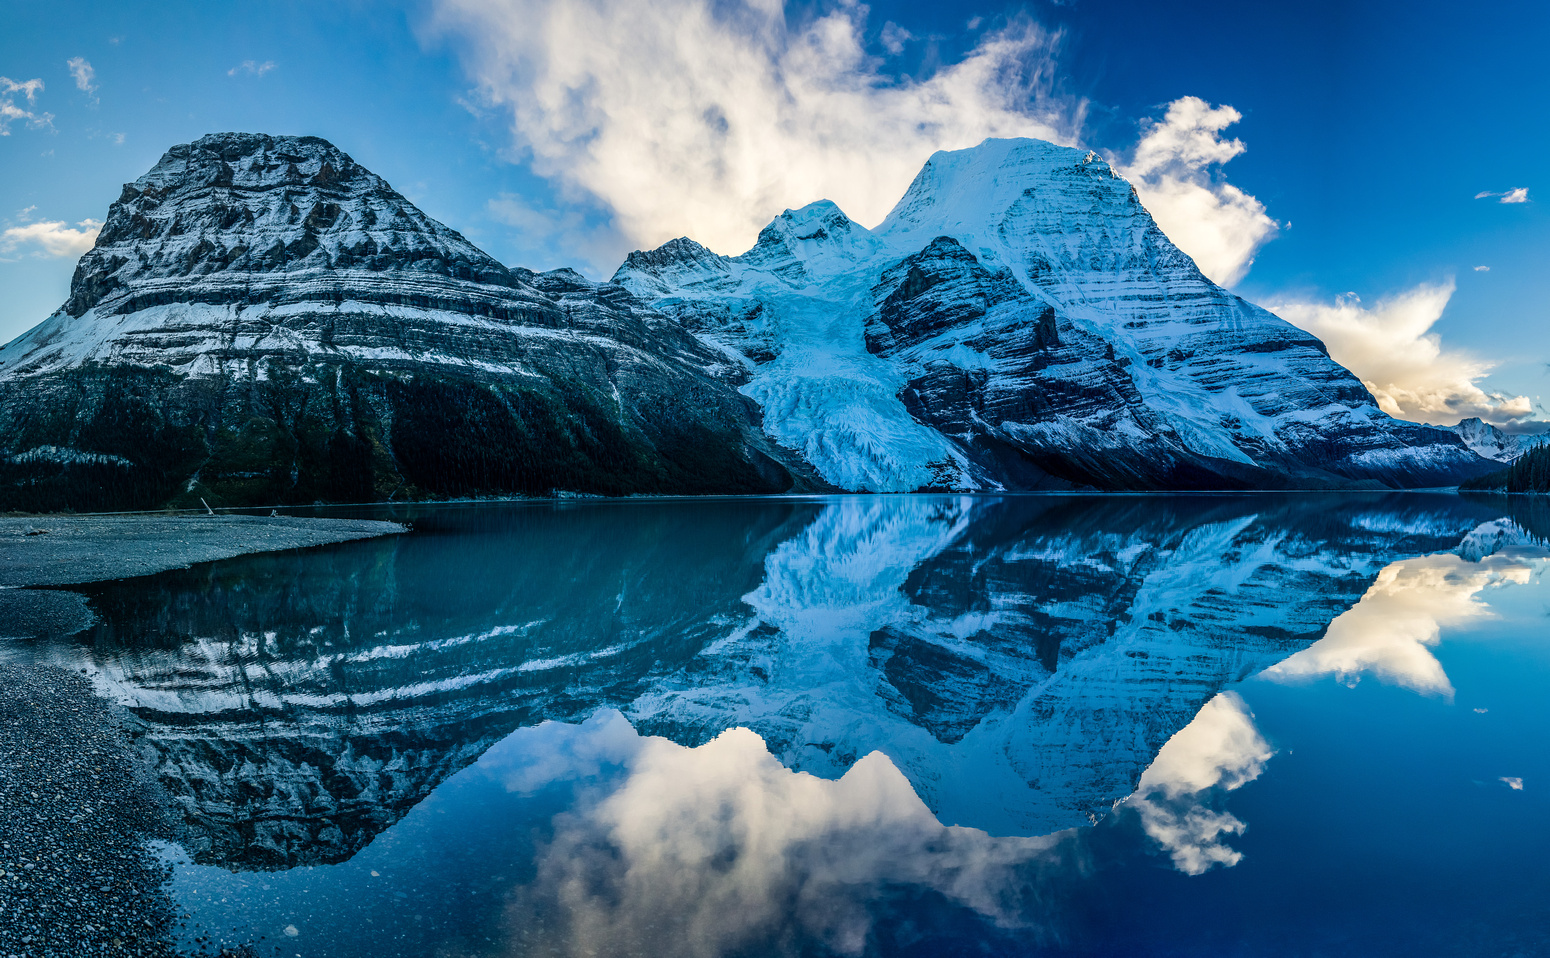 The sky cleared out in the evening and gave me this great shot of Robson and Rearguard reflected in Berg Lake.